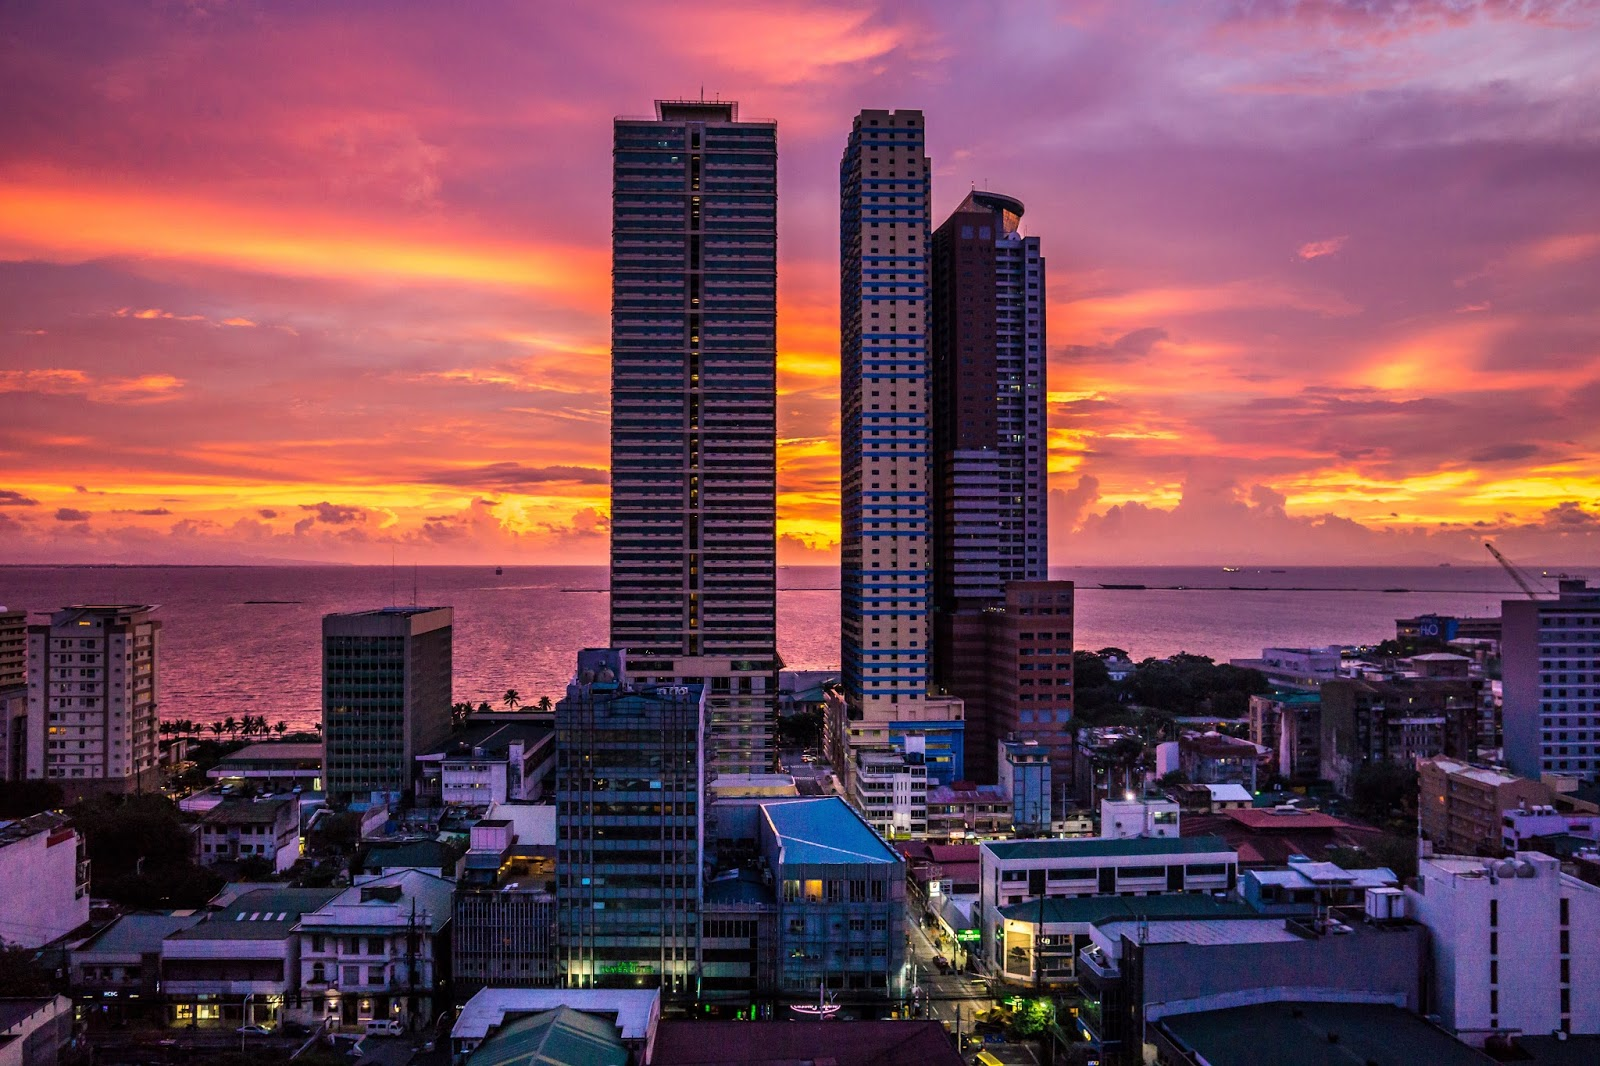 How Could Medical Tourism Impact Travel to the Philippines?